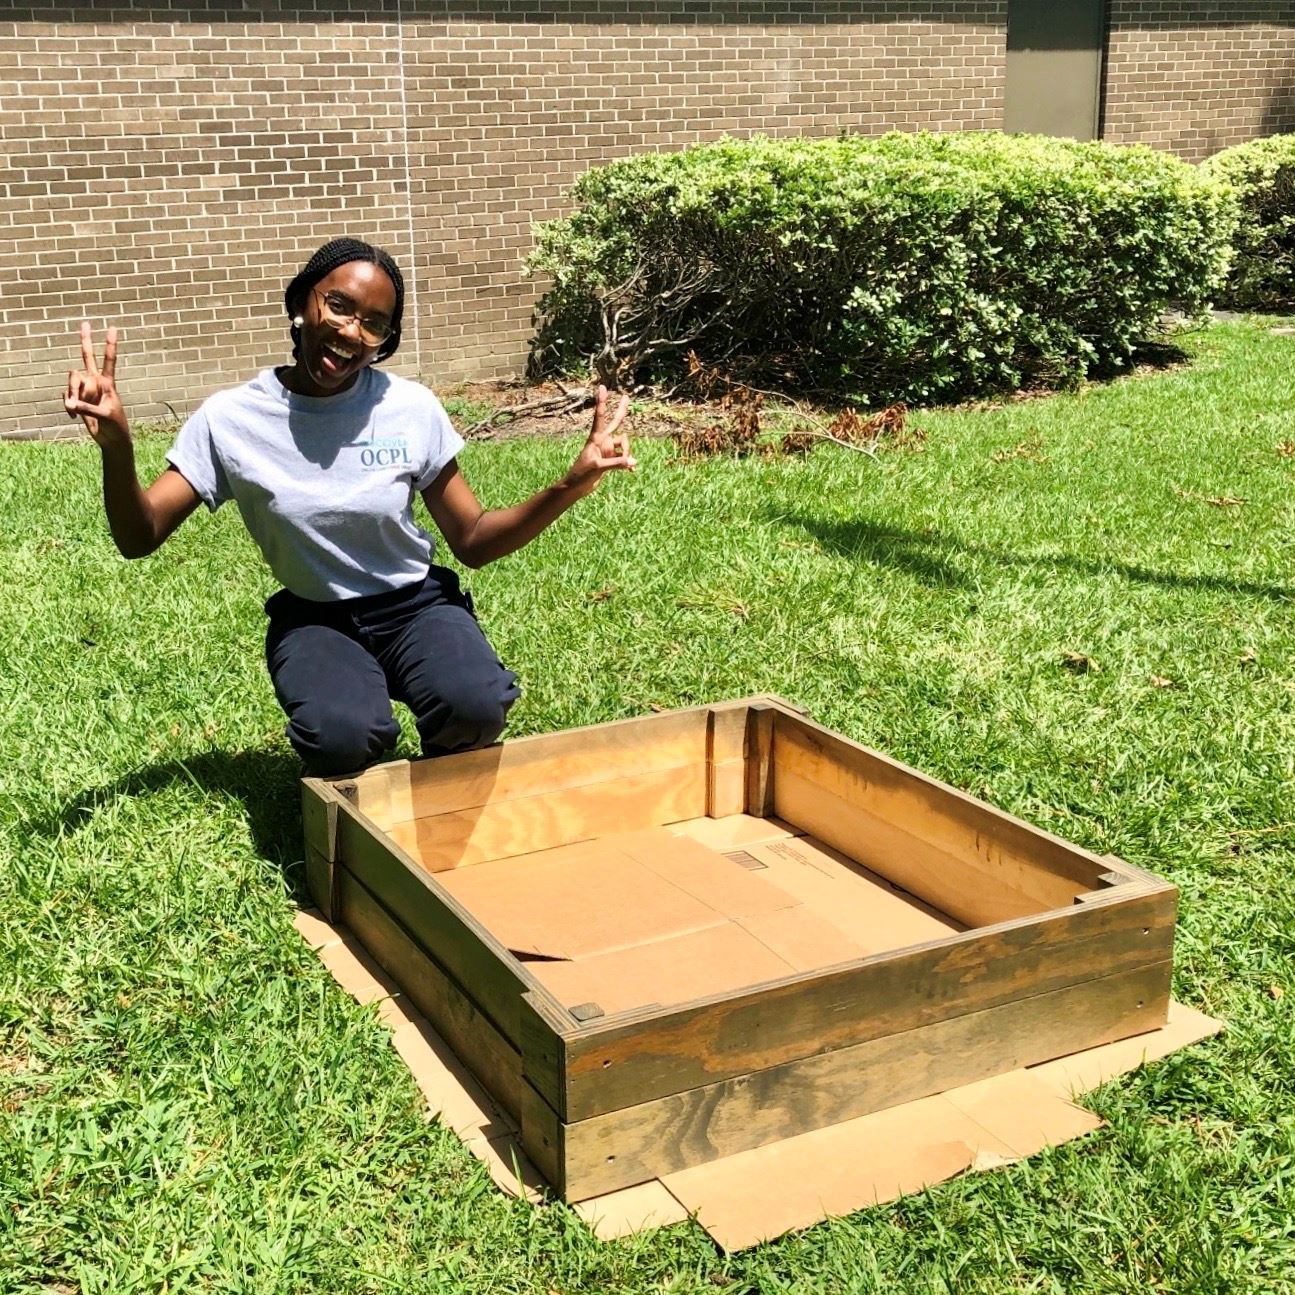 Kayla and the Garden Boxes